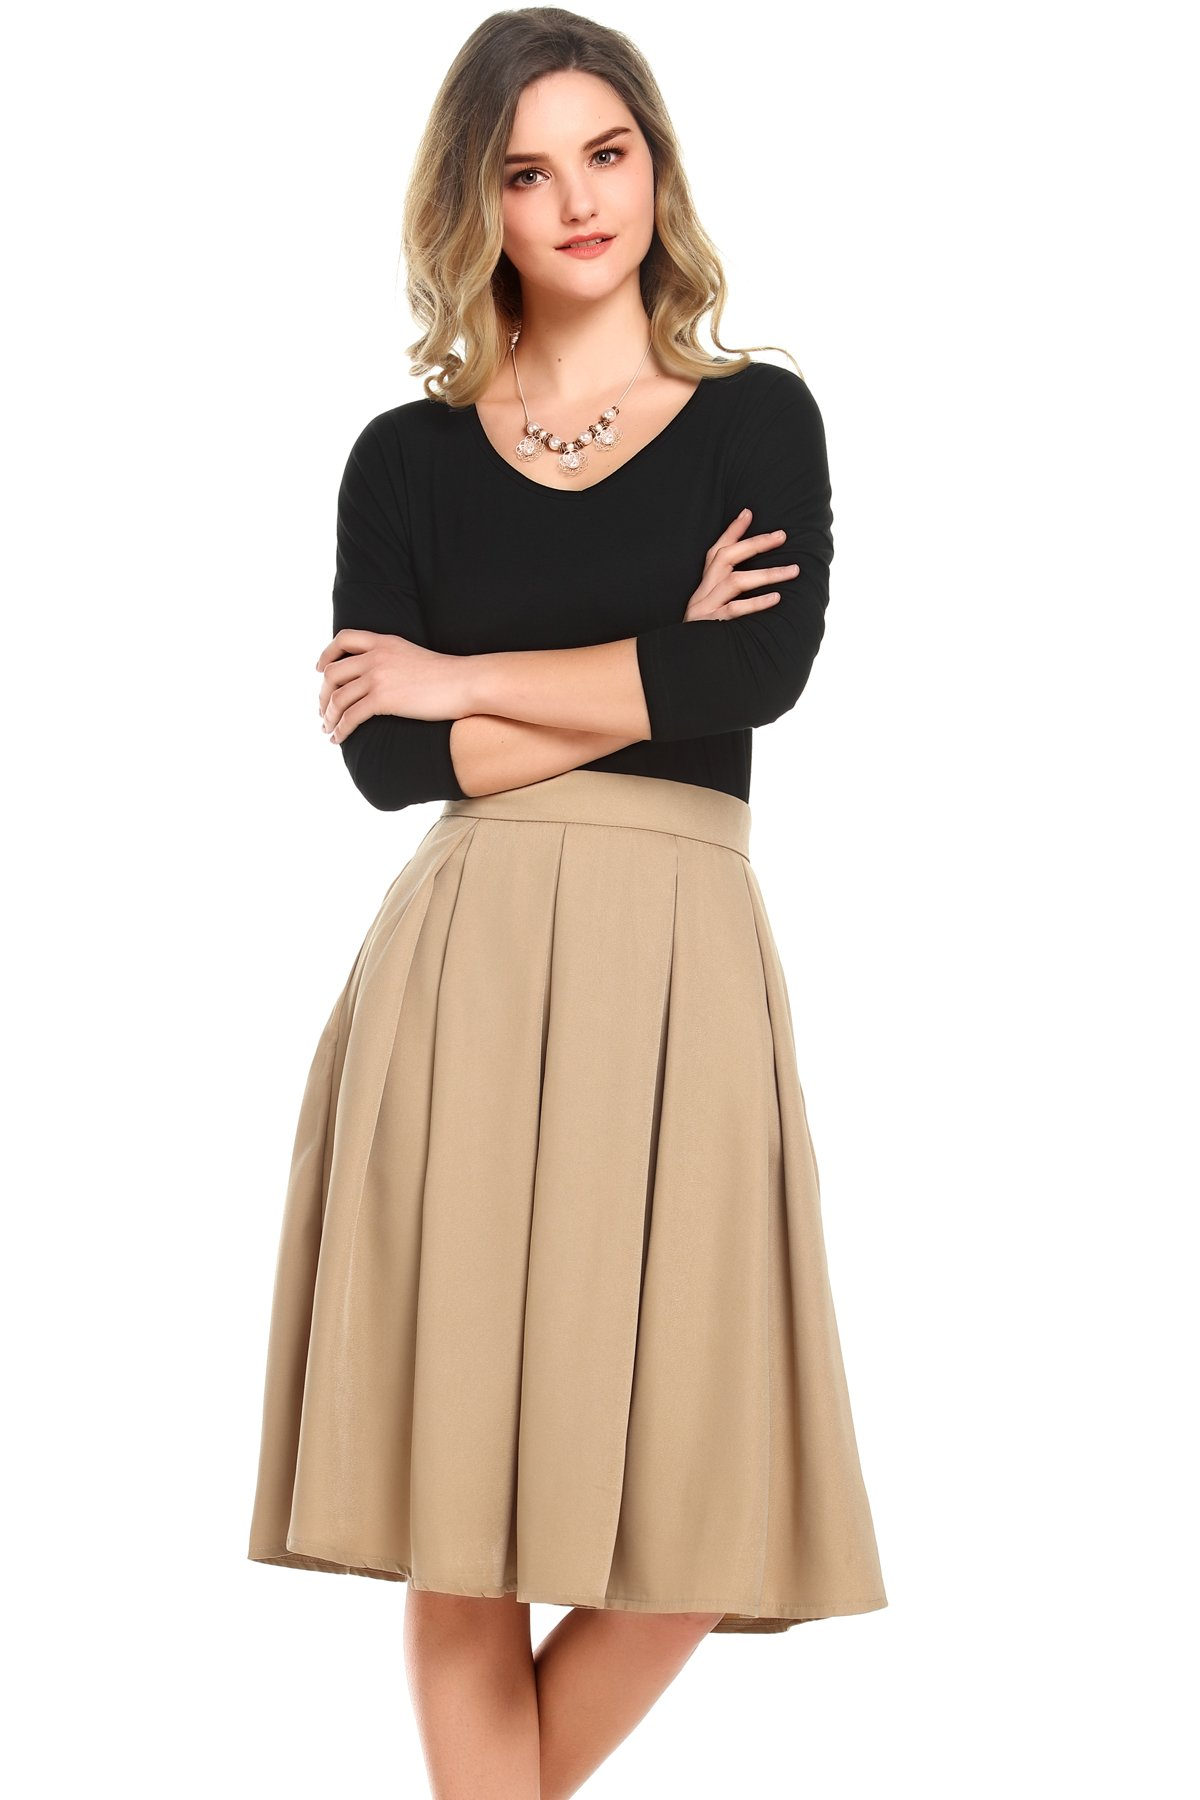 Beluring Womens High Waist Flared A-line Pleated Midi Long Skirt with Pockets Khaki Size 8